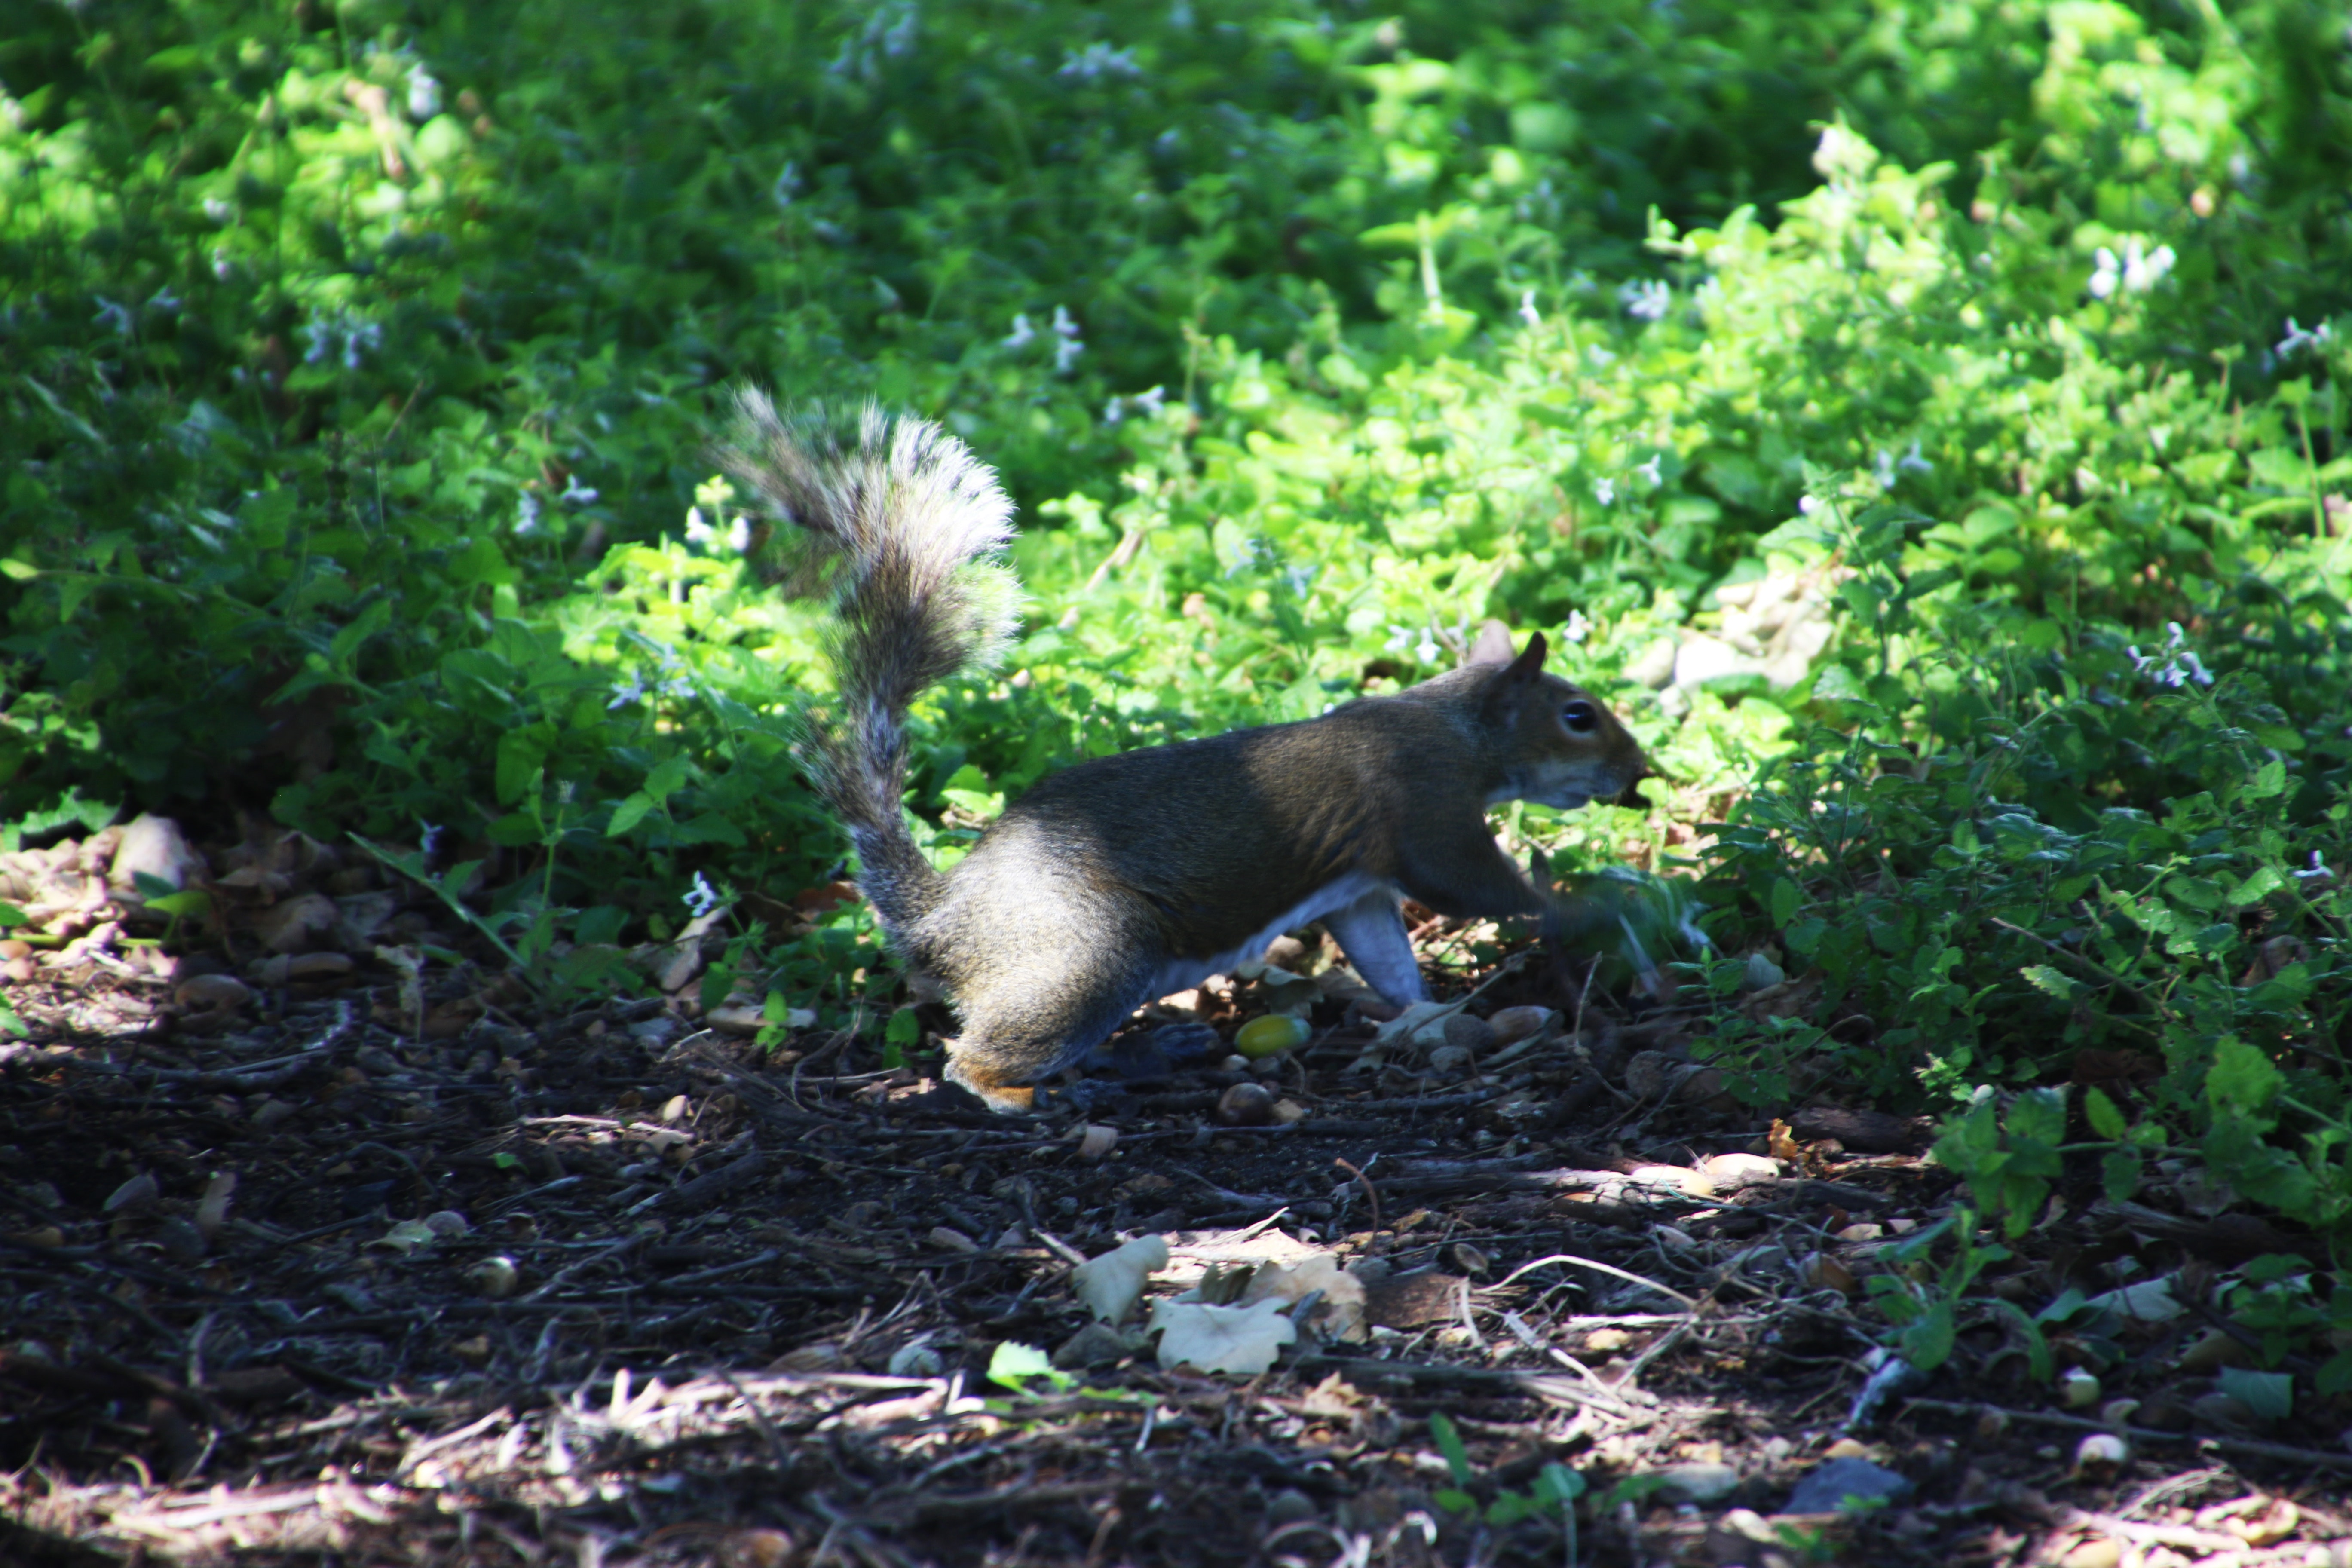 Squirrel running on the lawn, Squirrel running on the lawn